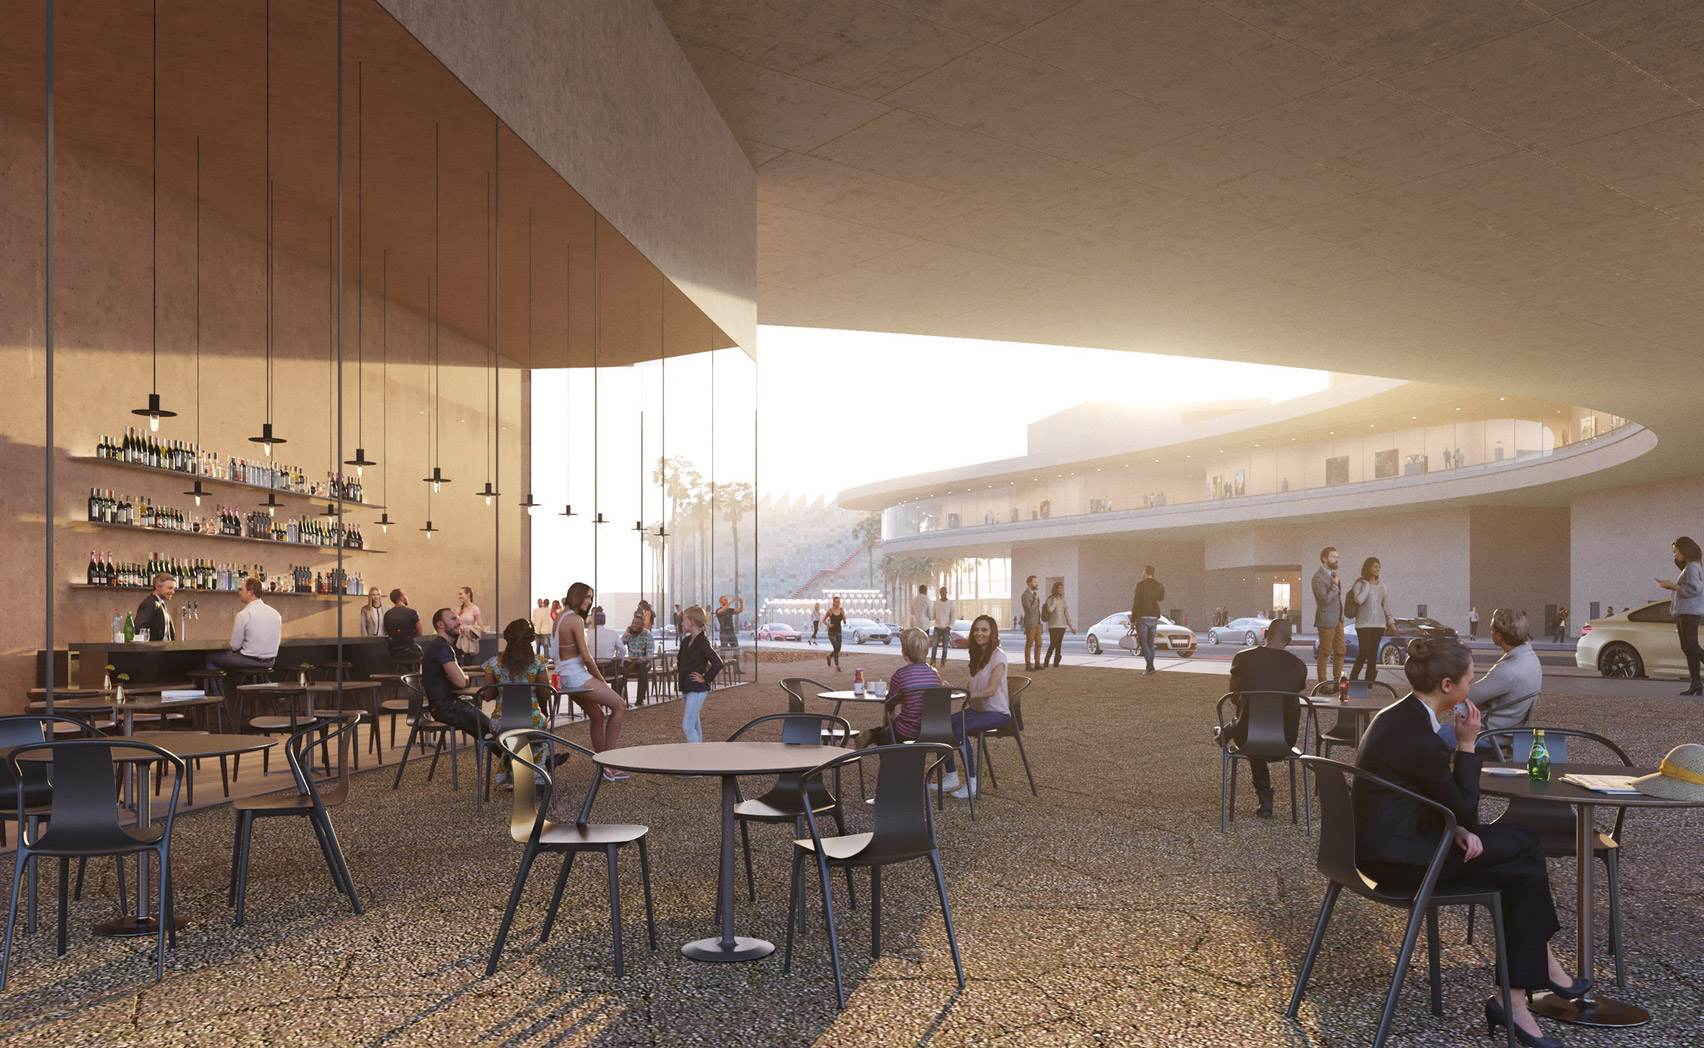 Peter Zumthor ditches the black for his LACMA expansion plans